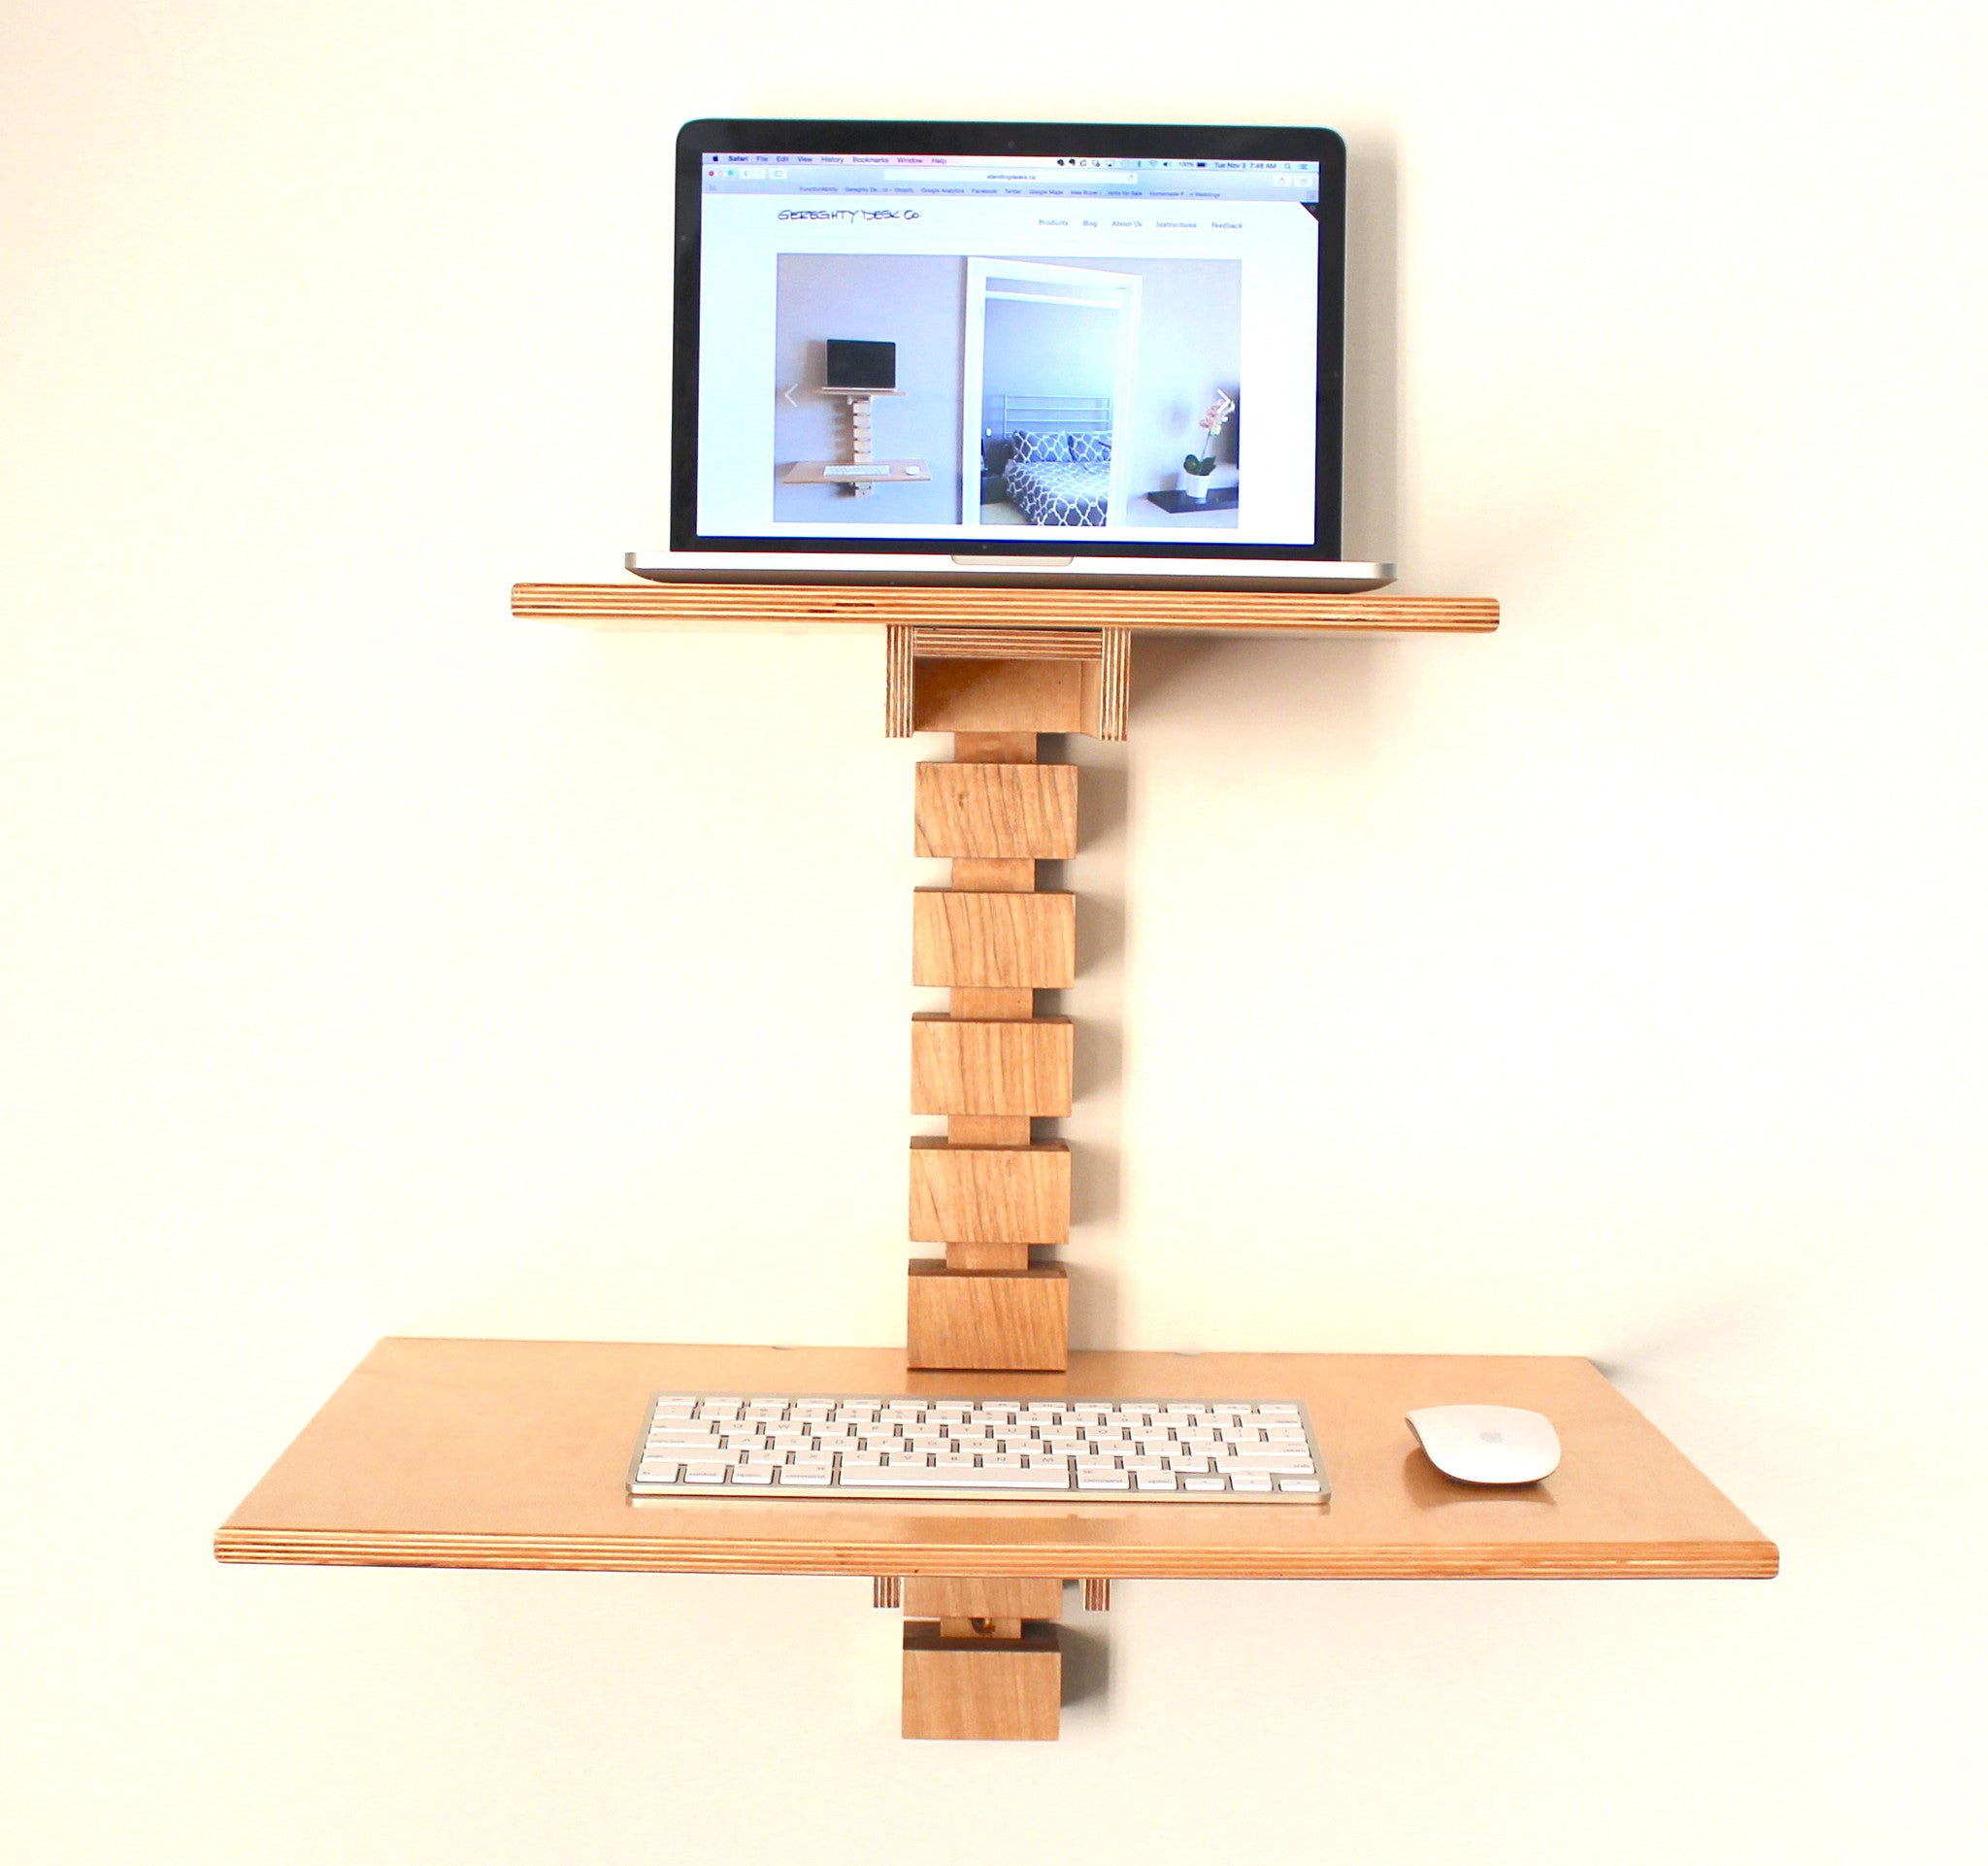 Wall Mounted Standing Desk Gereghty Desk Co